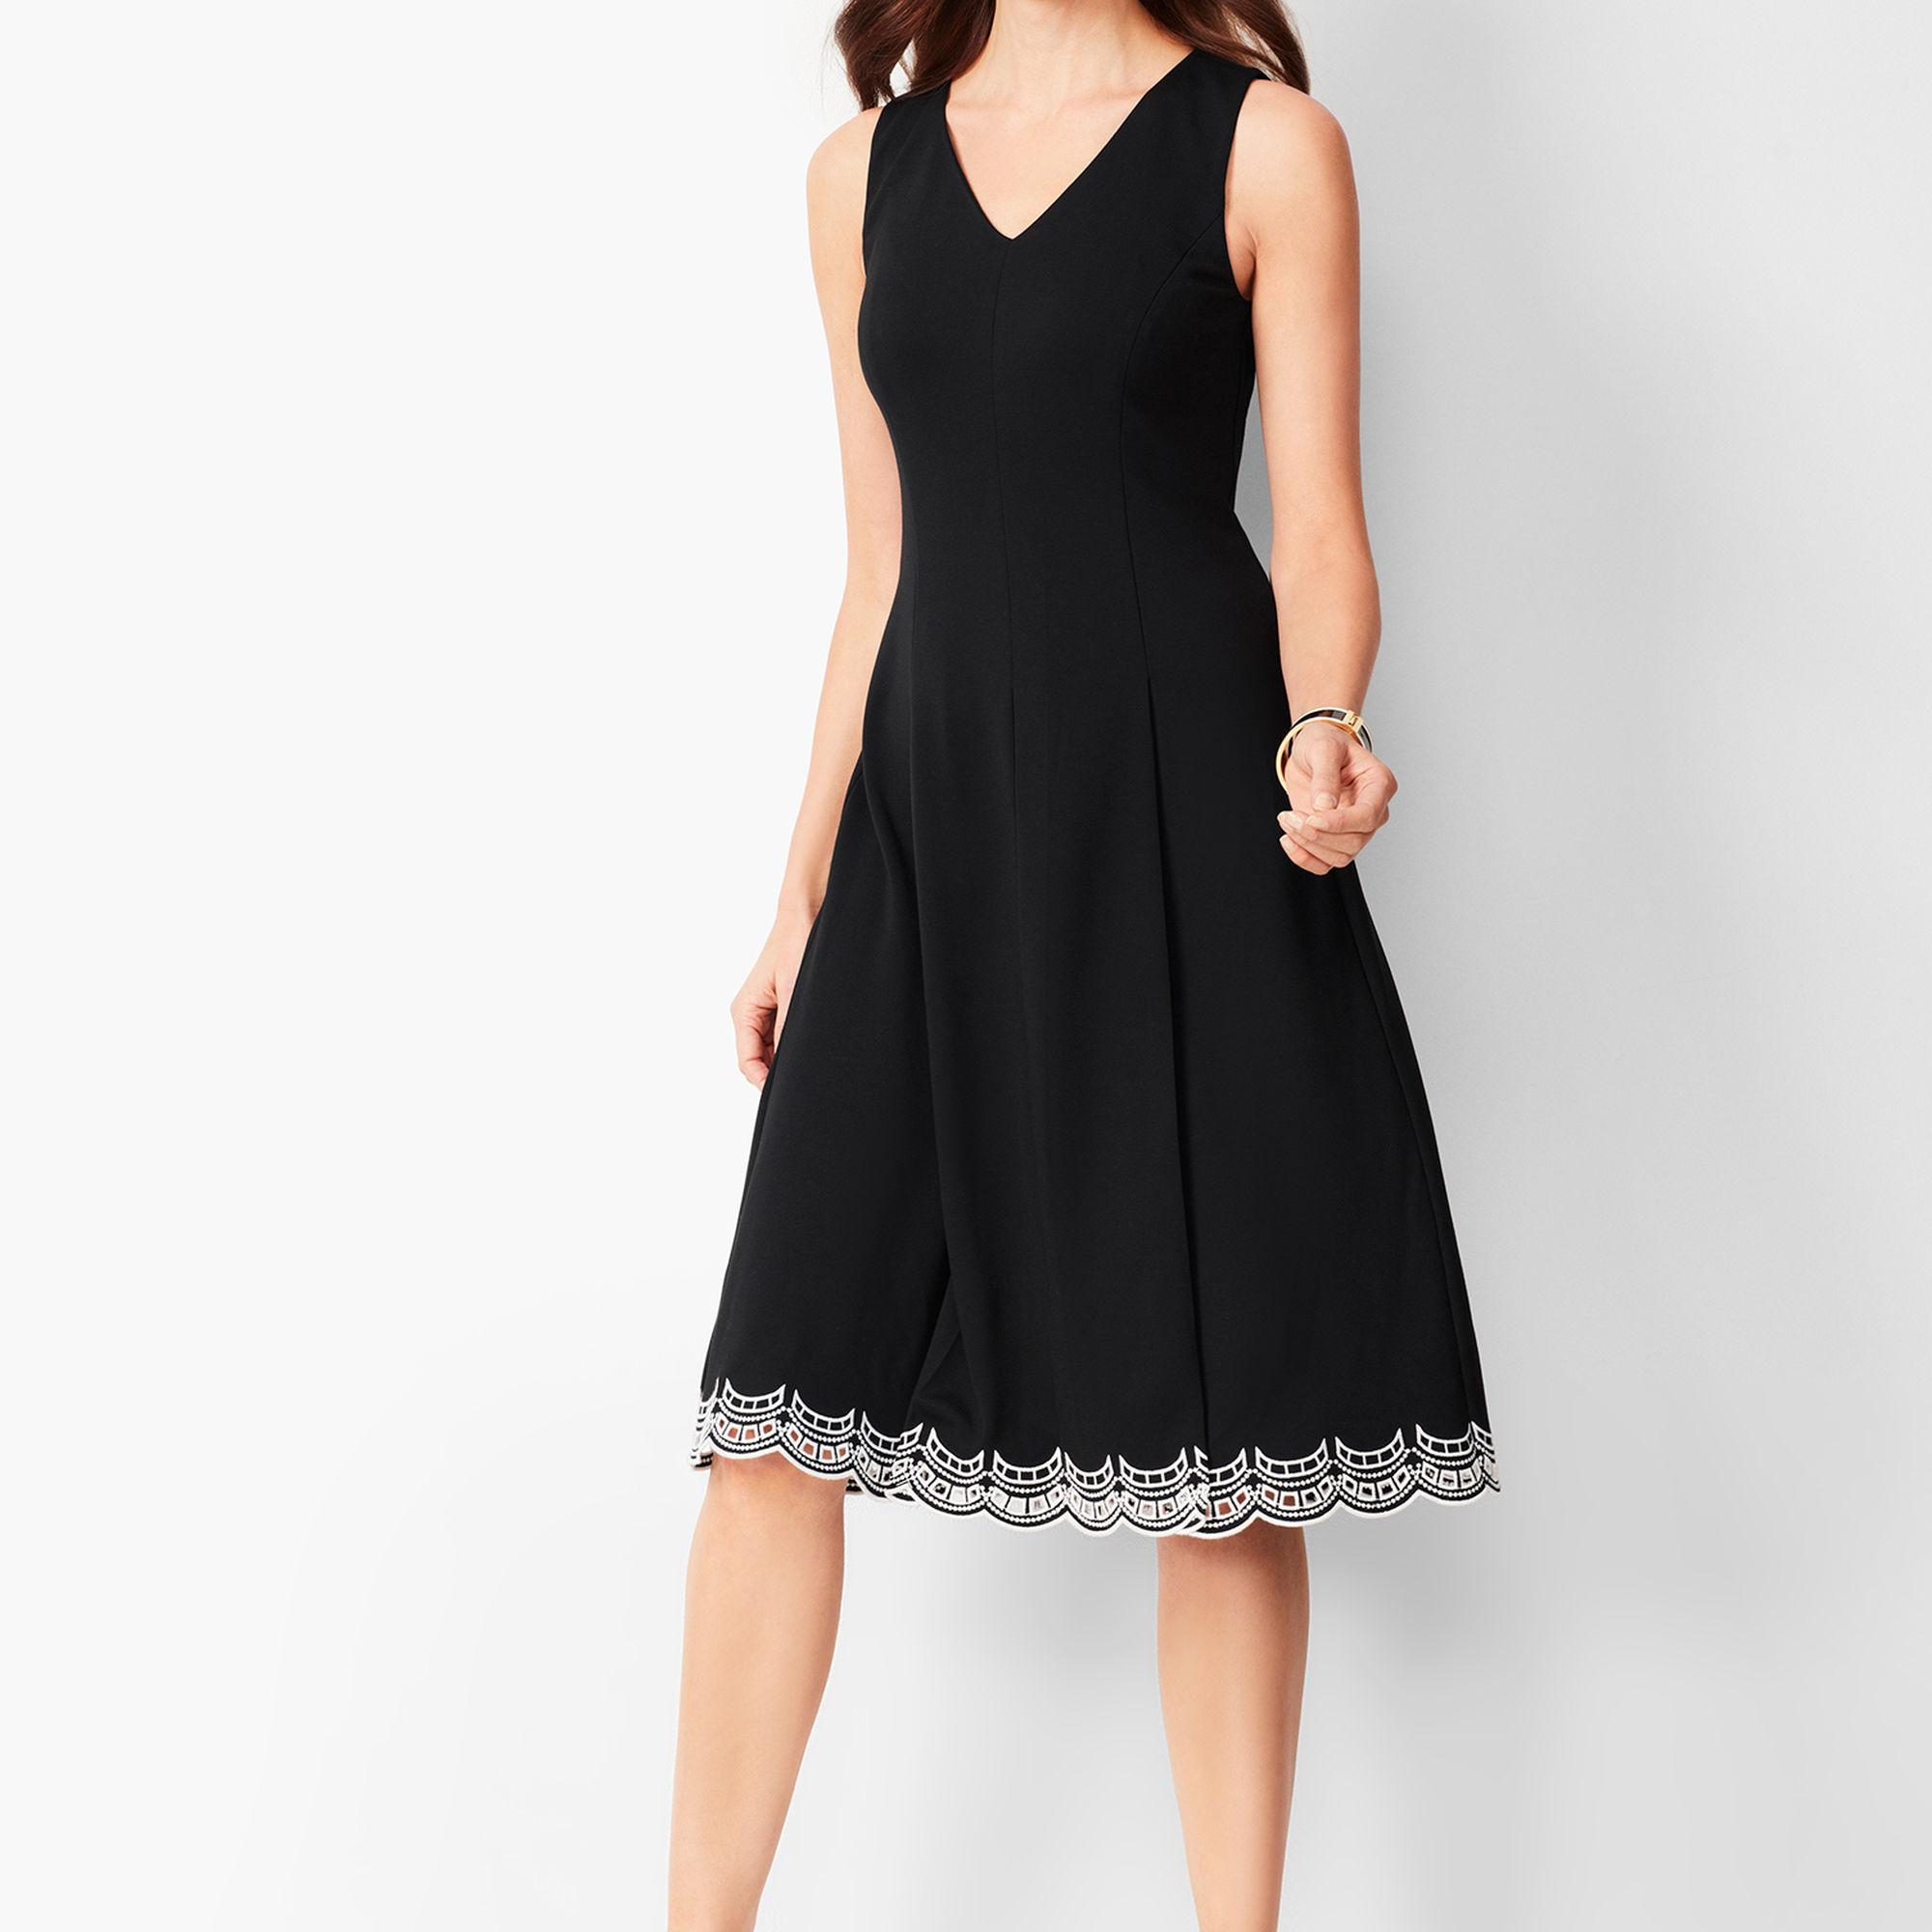 Embroidered Ponte Fit and Flare Dress from Talbots